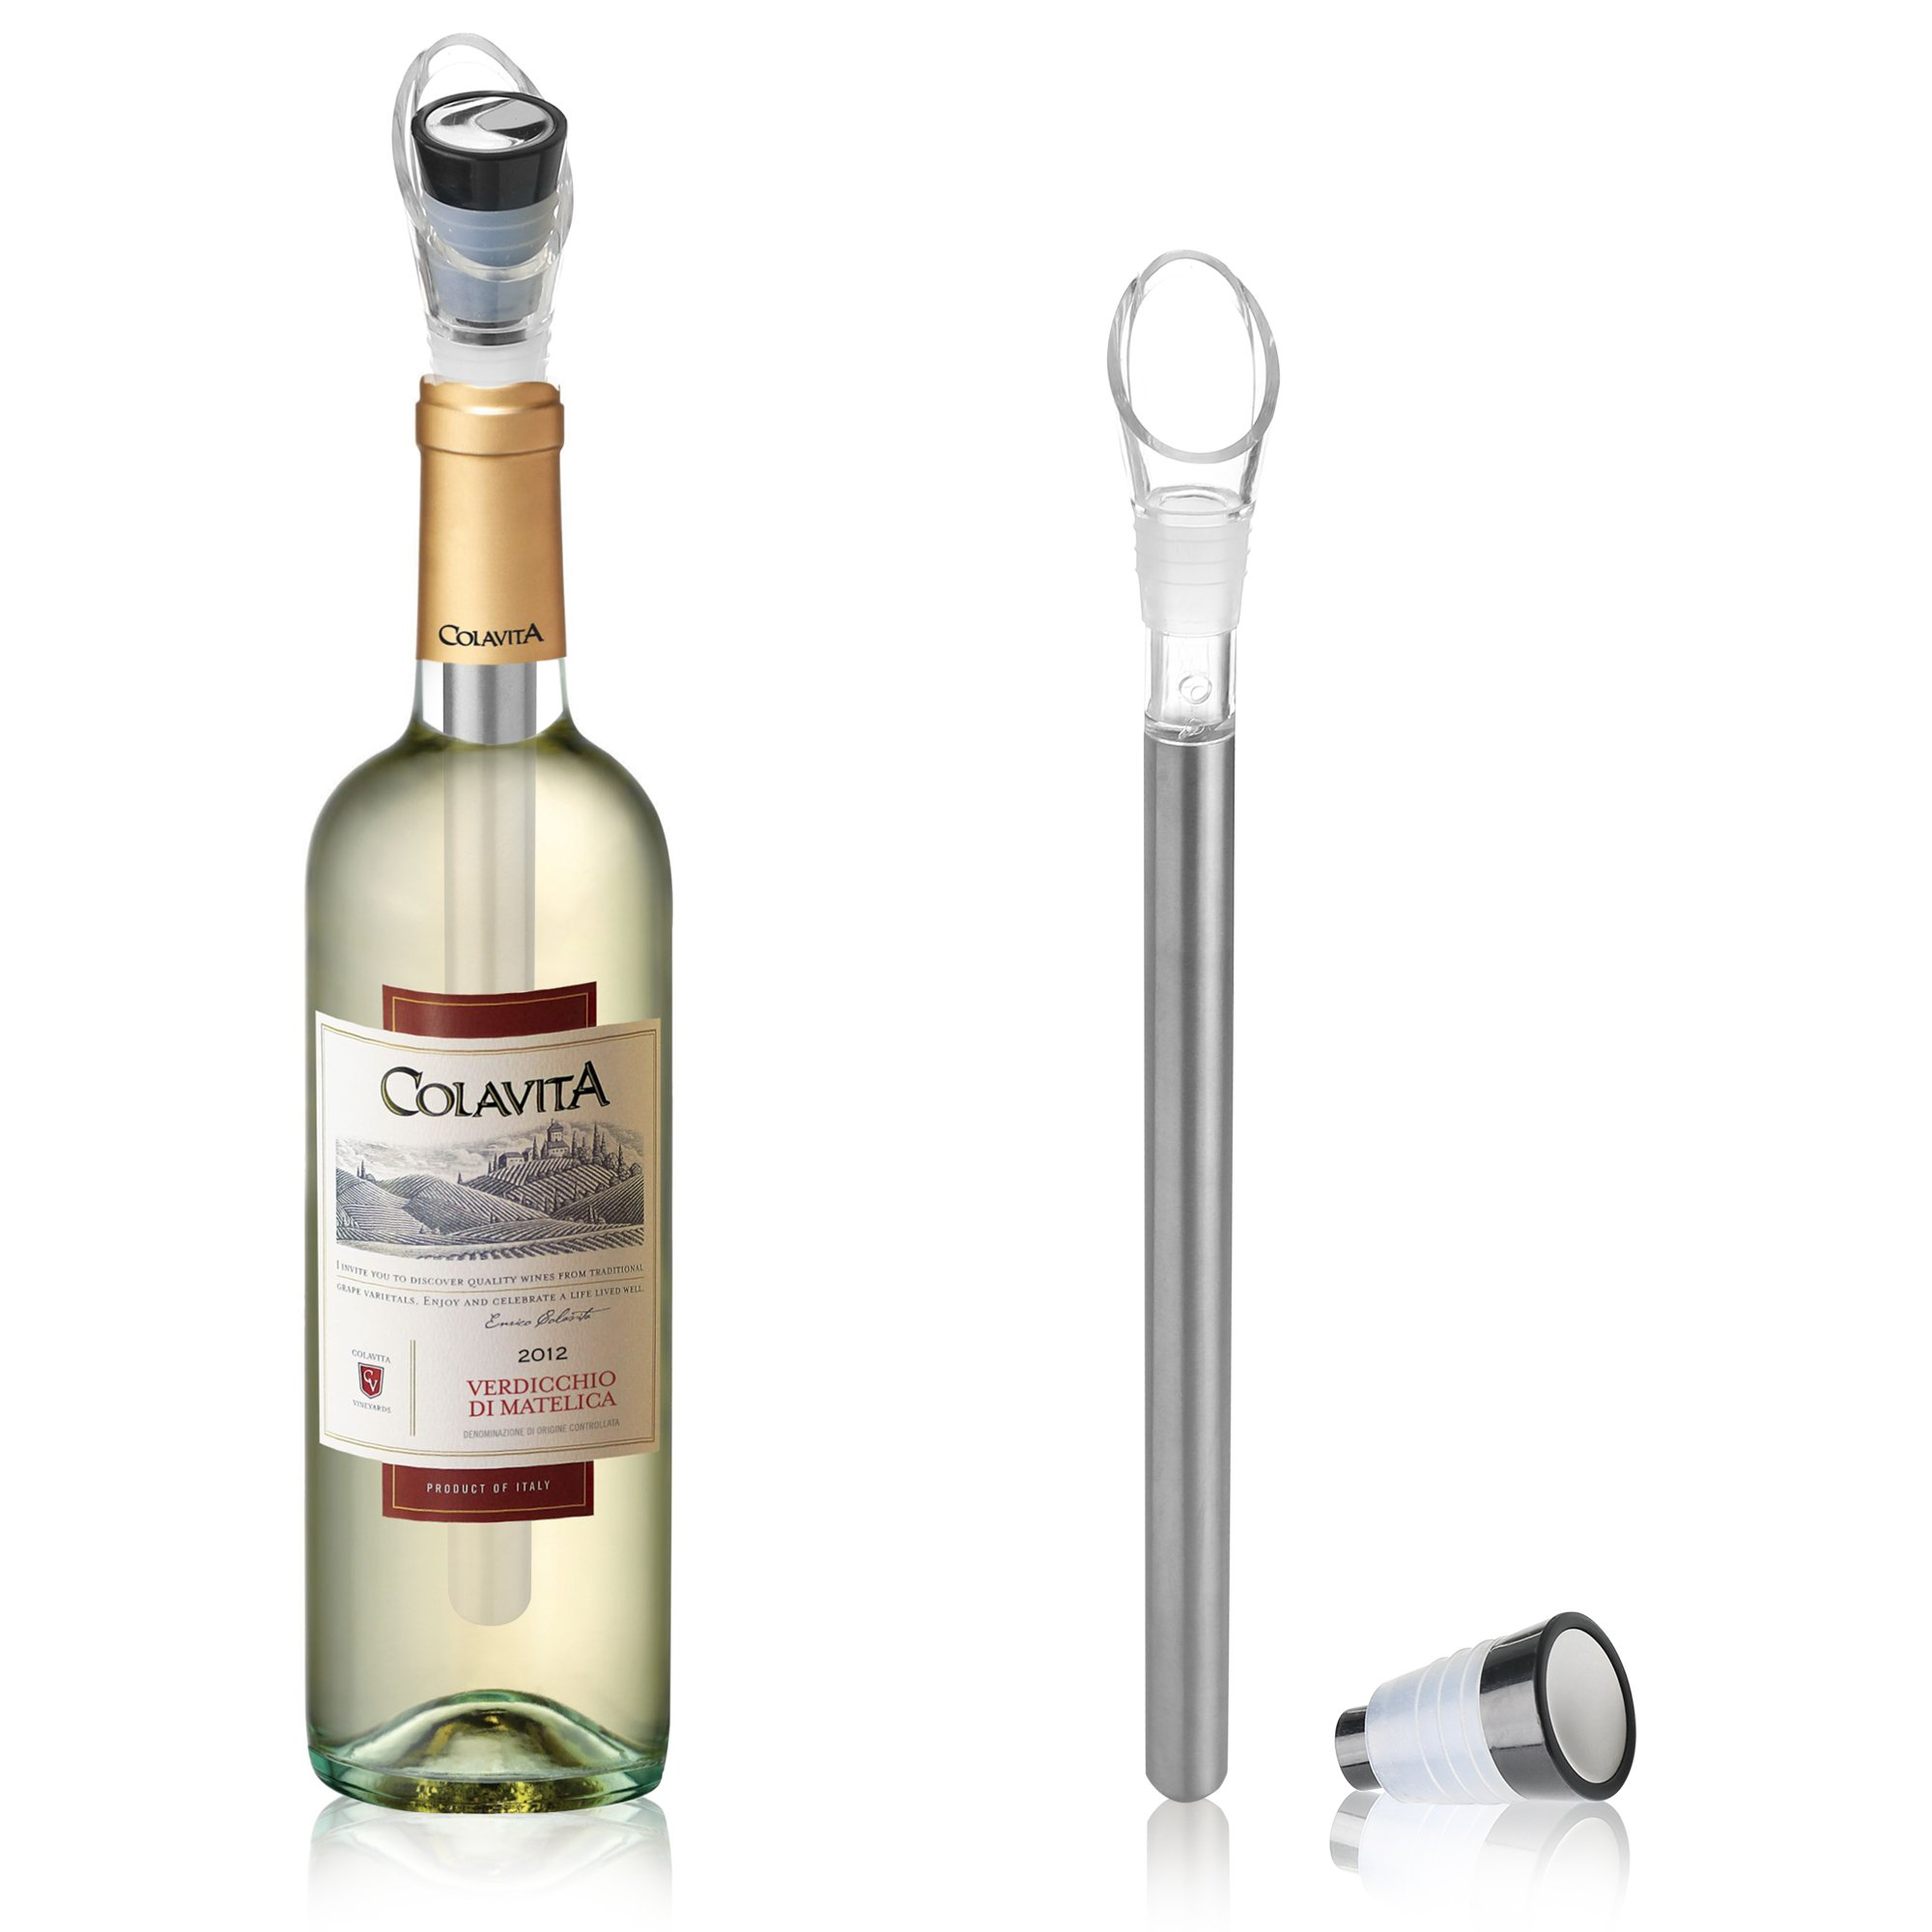 4-IN-1 Stainless Steel Wine Bottle Cooler Stick (2 Pack) - DeVine Wine Chiller, Aerator, Pourer and Wine Stopper - Keep Wines Chilled For Hours